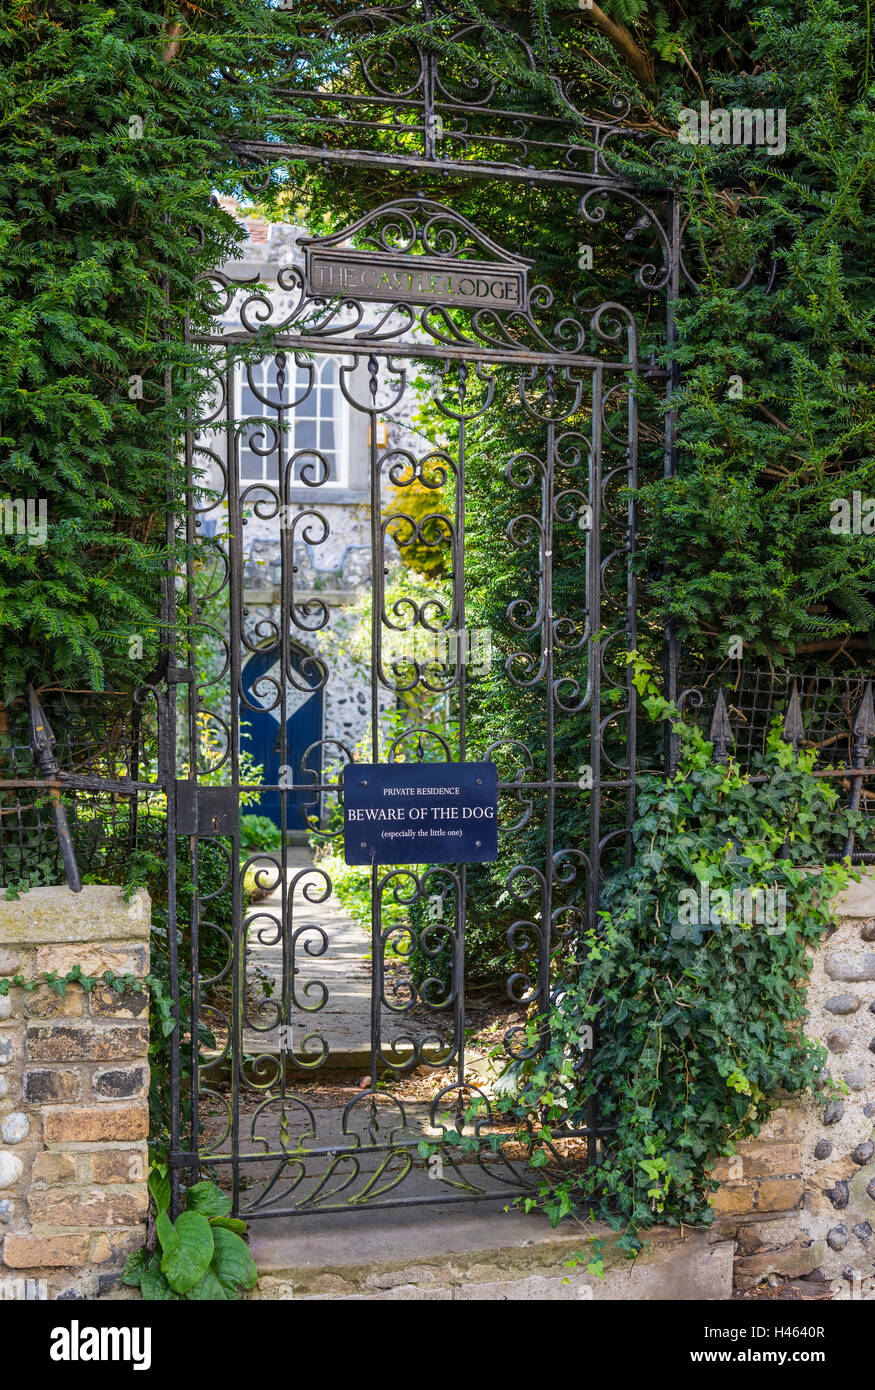 Beware of the dog sign on a metallic gate at private residence. - Stock Image